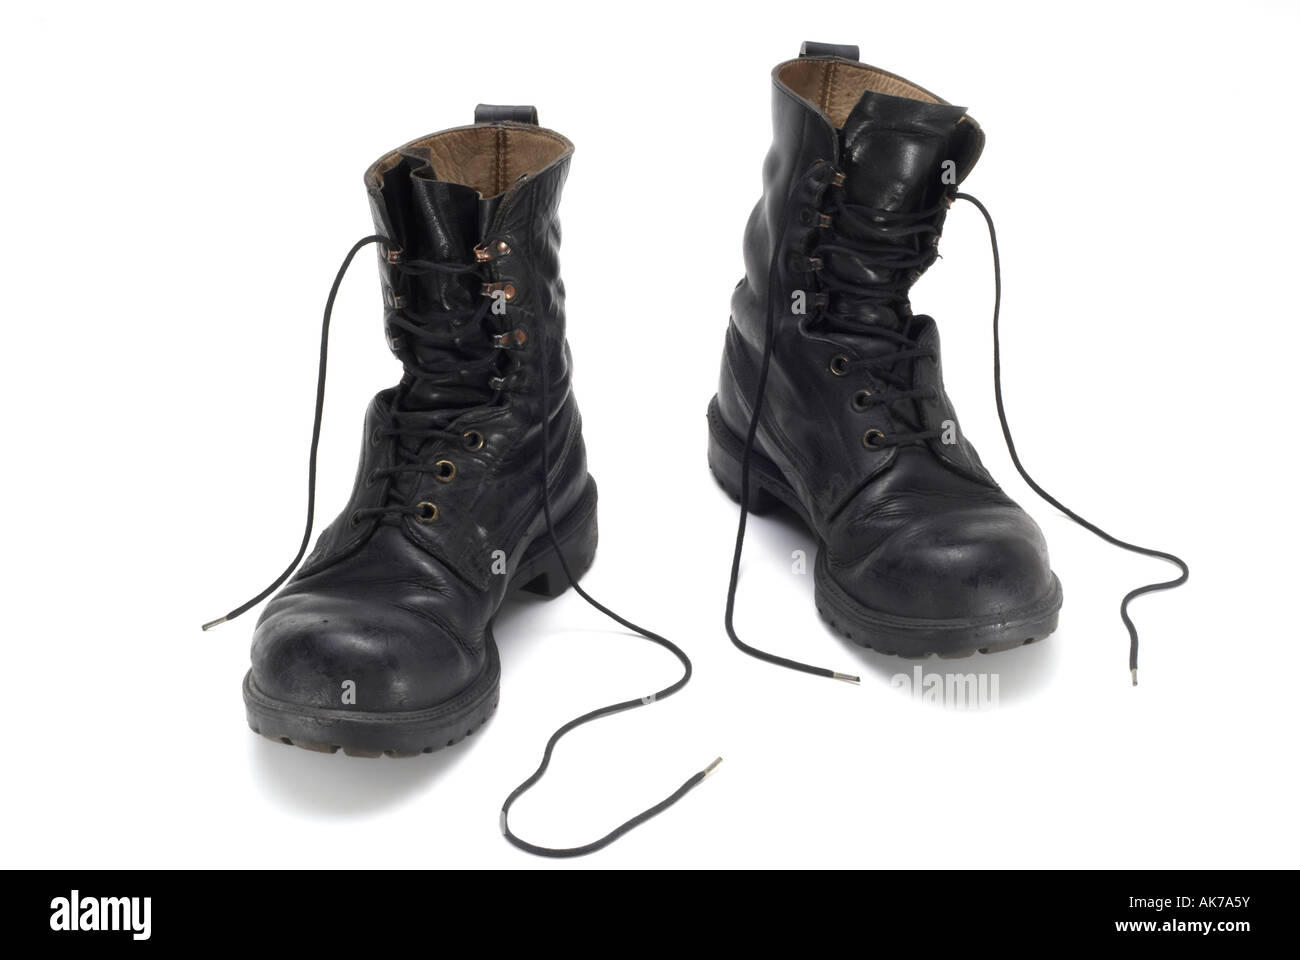 British army Forces issue black army leather boots - Stock Image